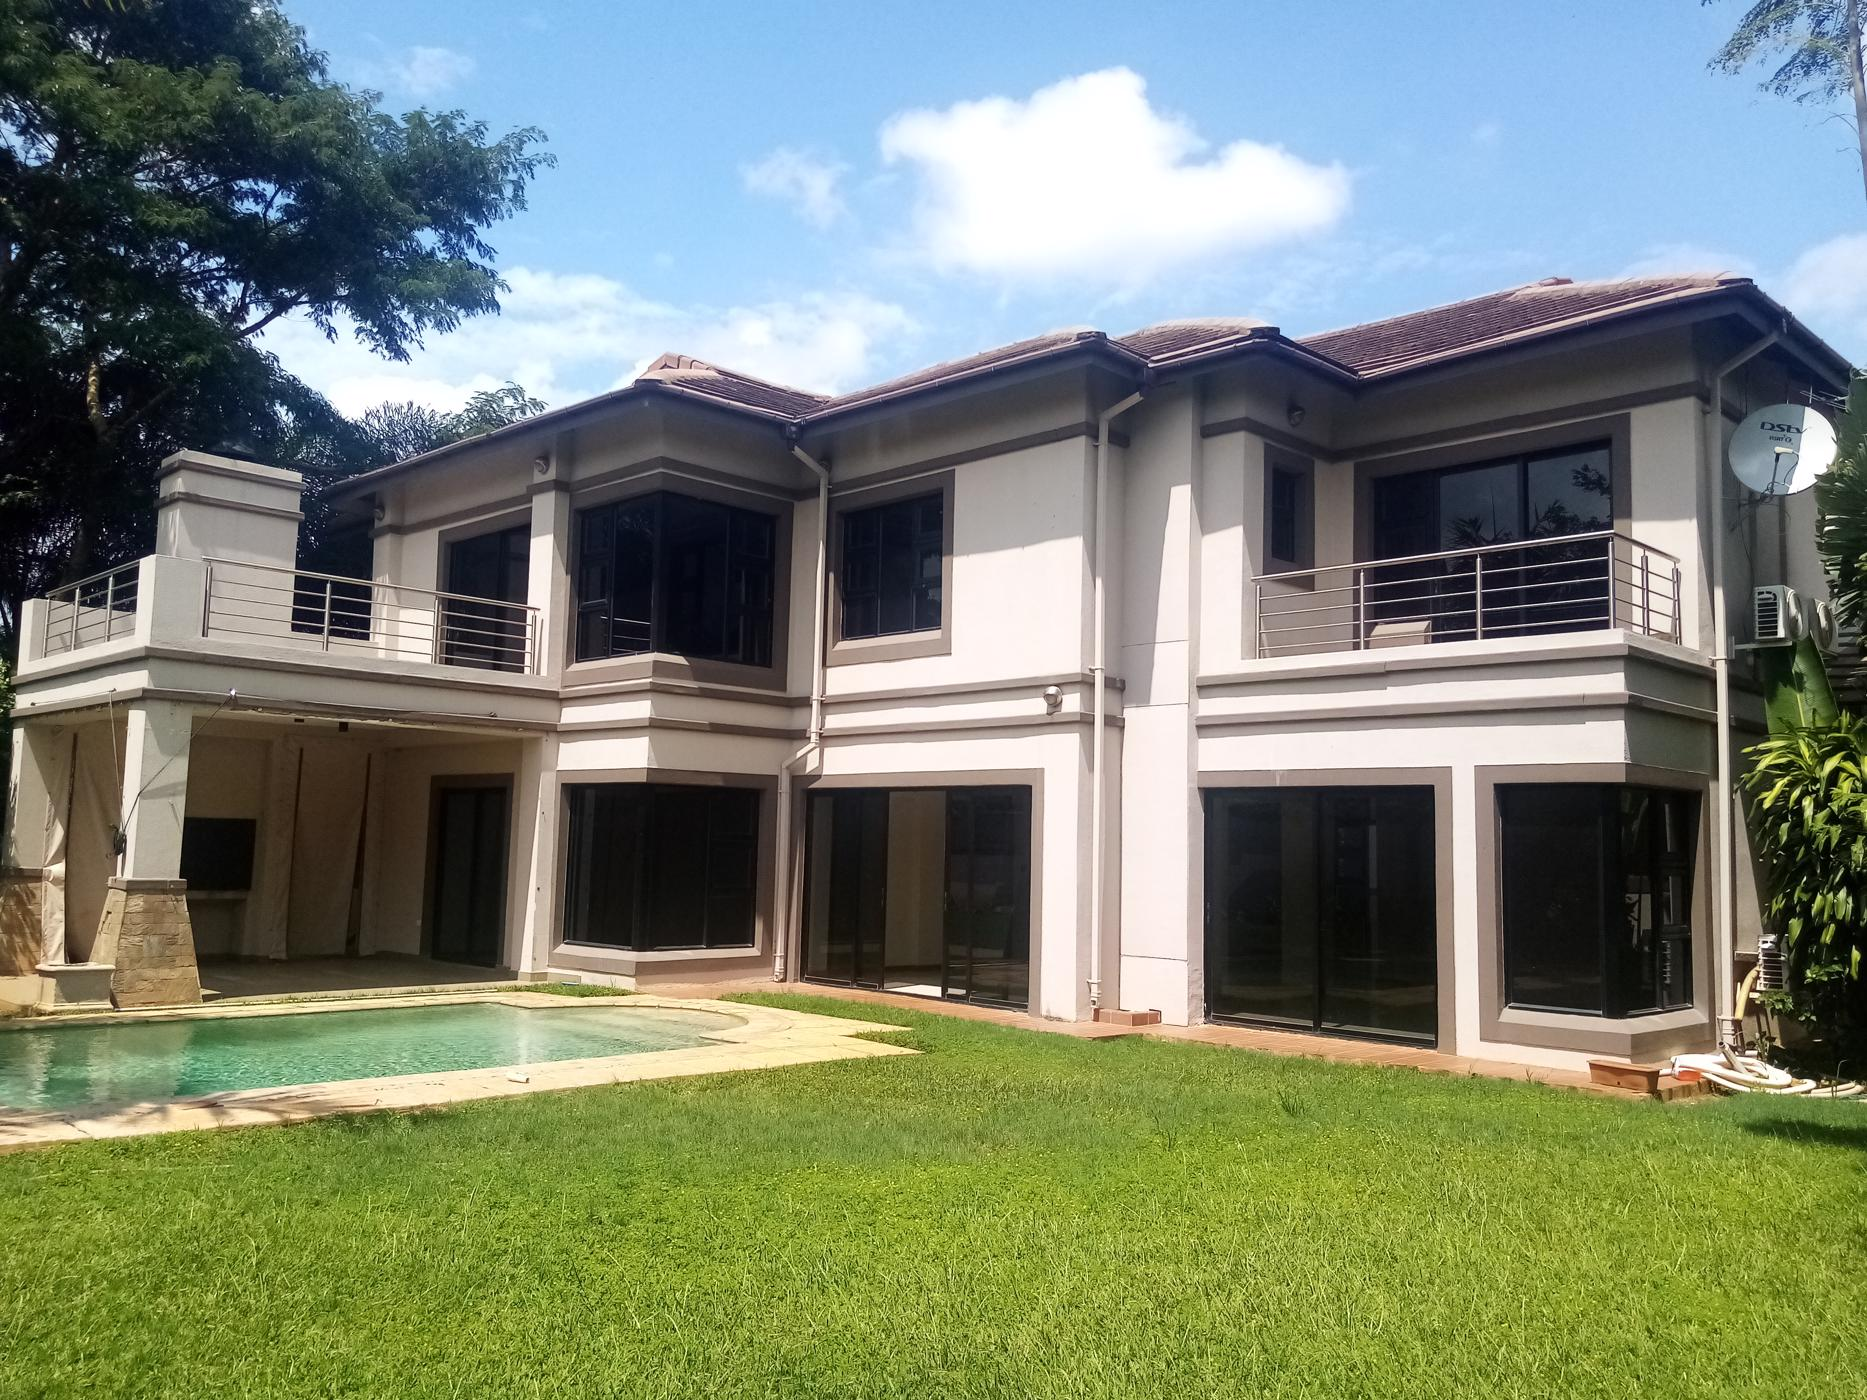 4 bedroom house to rent in Lilayi (Zambia)